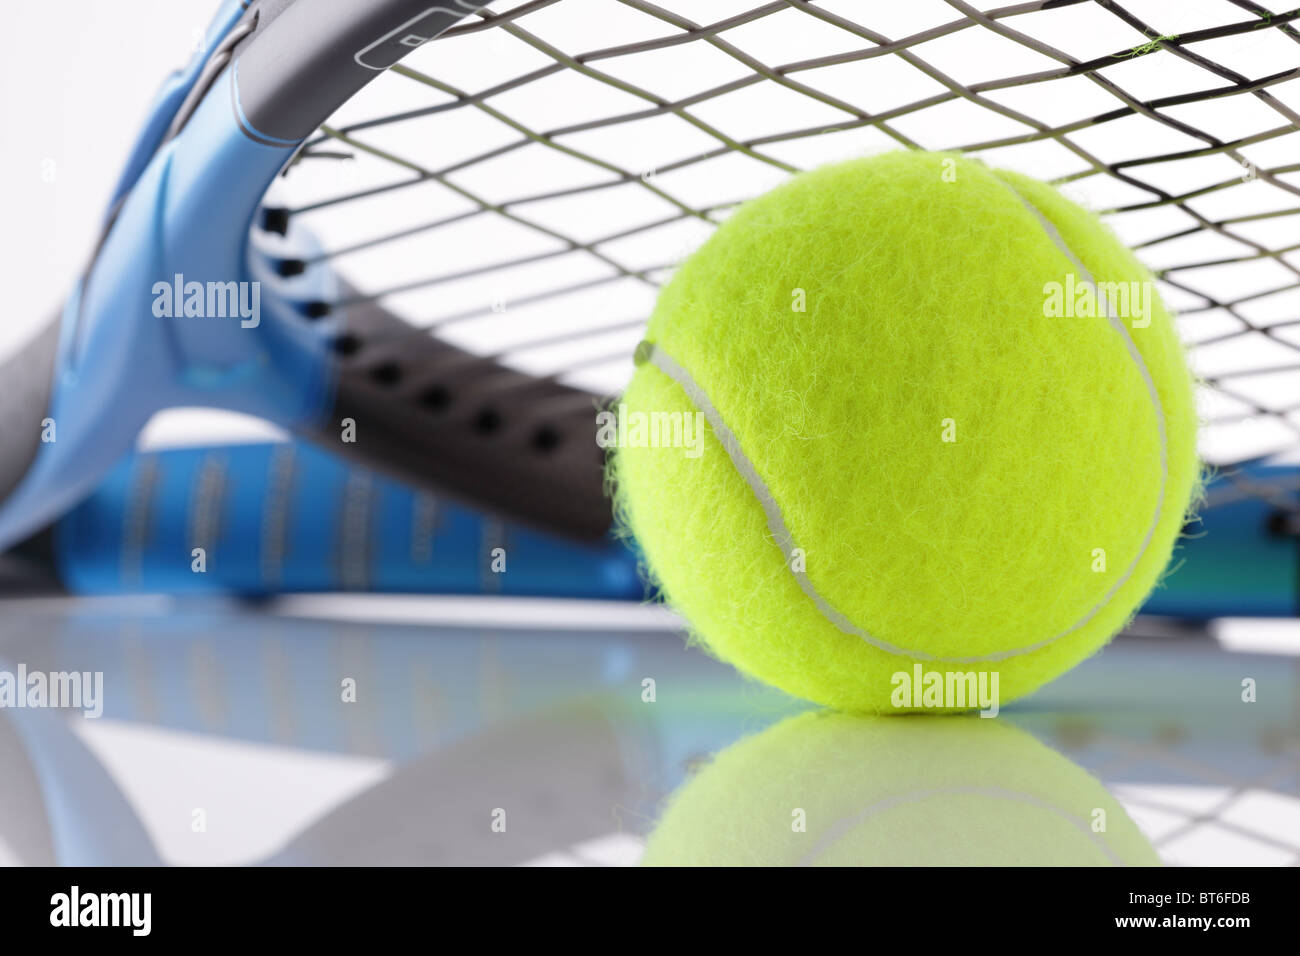 Tennis racket and ball - Stock Image